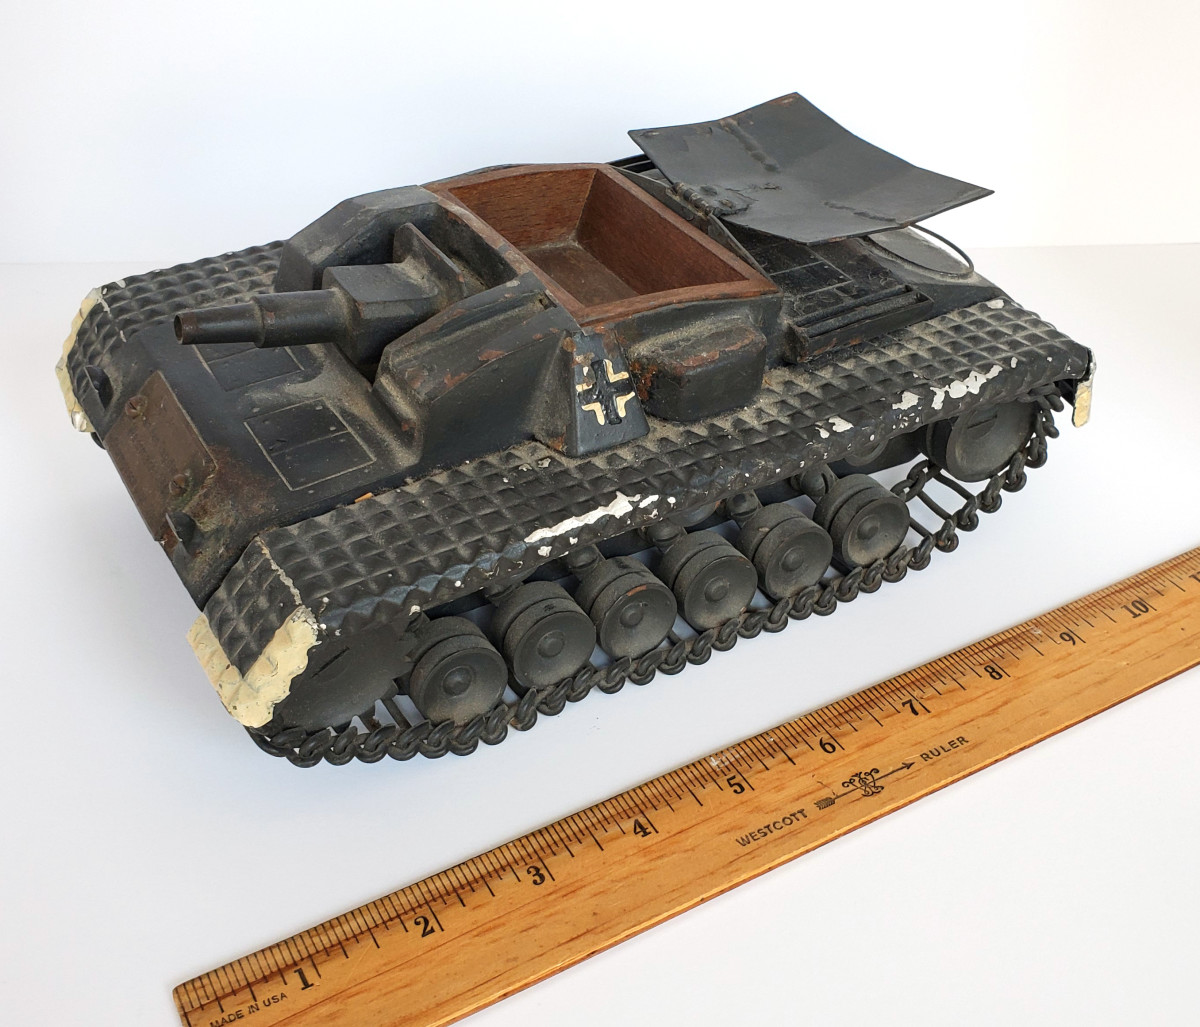 """The model of the assault gun measures about 10"""" x 7"""" x 4"""". The German recognition flag tilts up to reveal a small compartment large enough to hold cigarettes."""